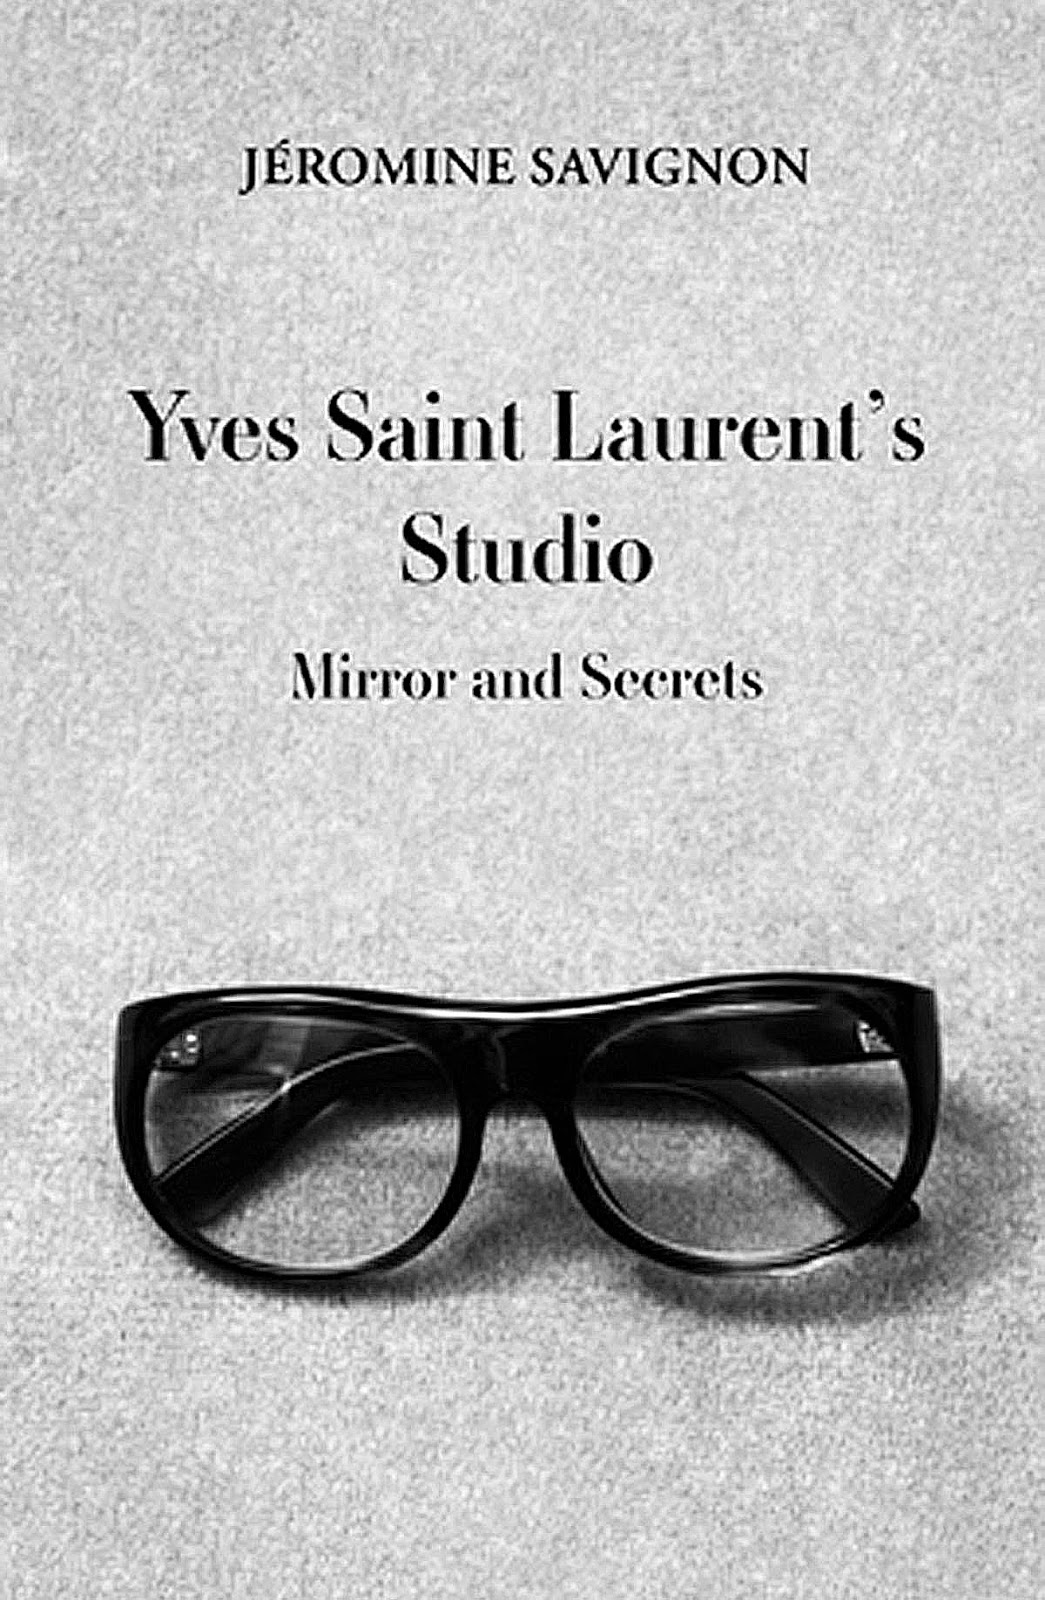 via fashioned by love | Yves Saint Laurent's Studio: mirror and secrets book